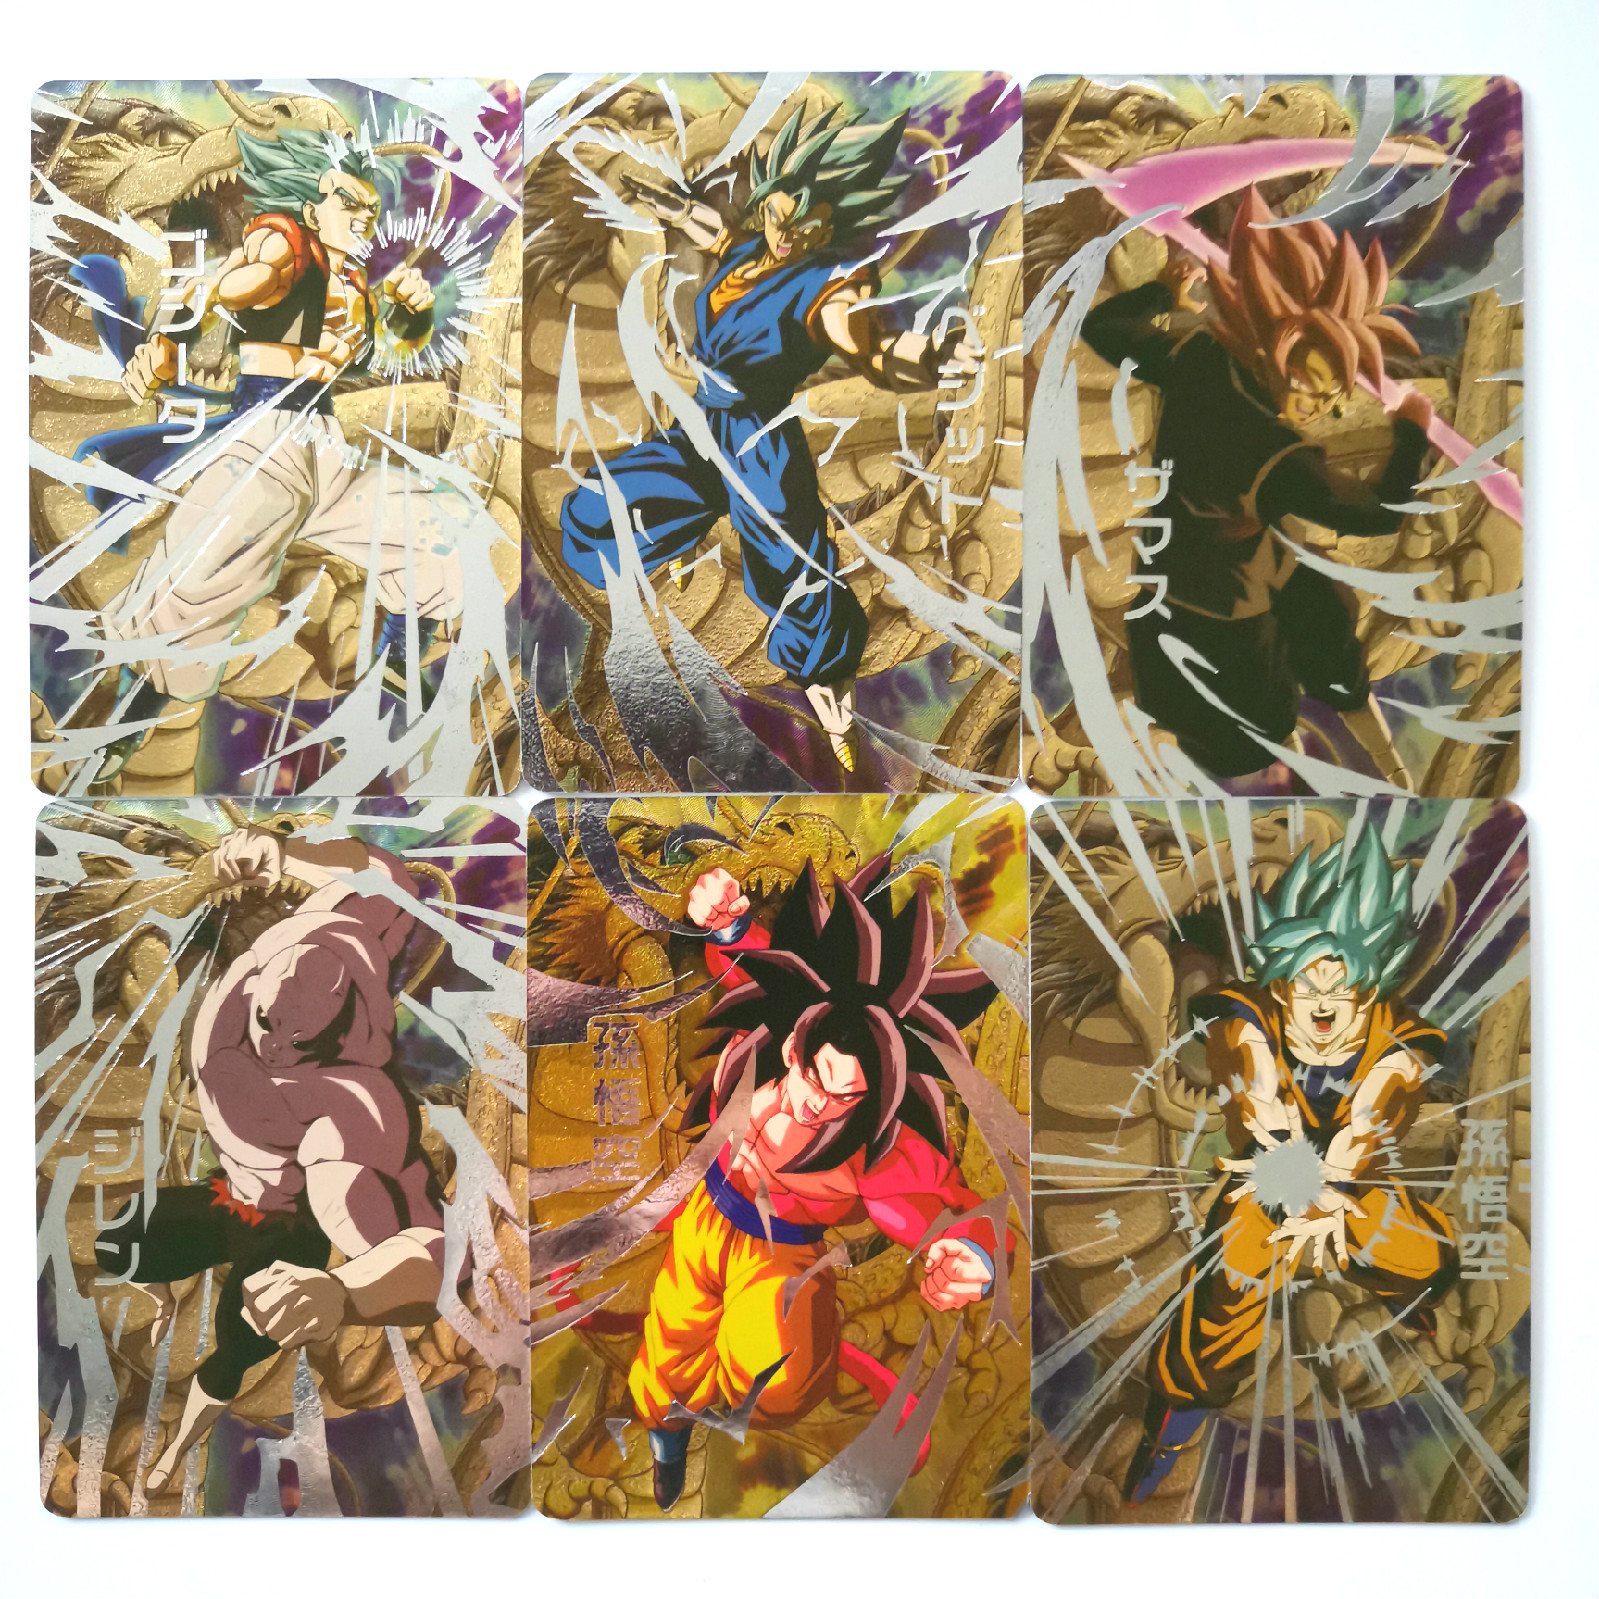 32pcs/set Super Dragon Ball Only 37 Sets Heroes Battle Card Ultra Instinct Goku Vegeta Game Collection Anime Cards